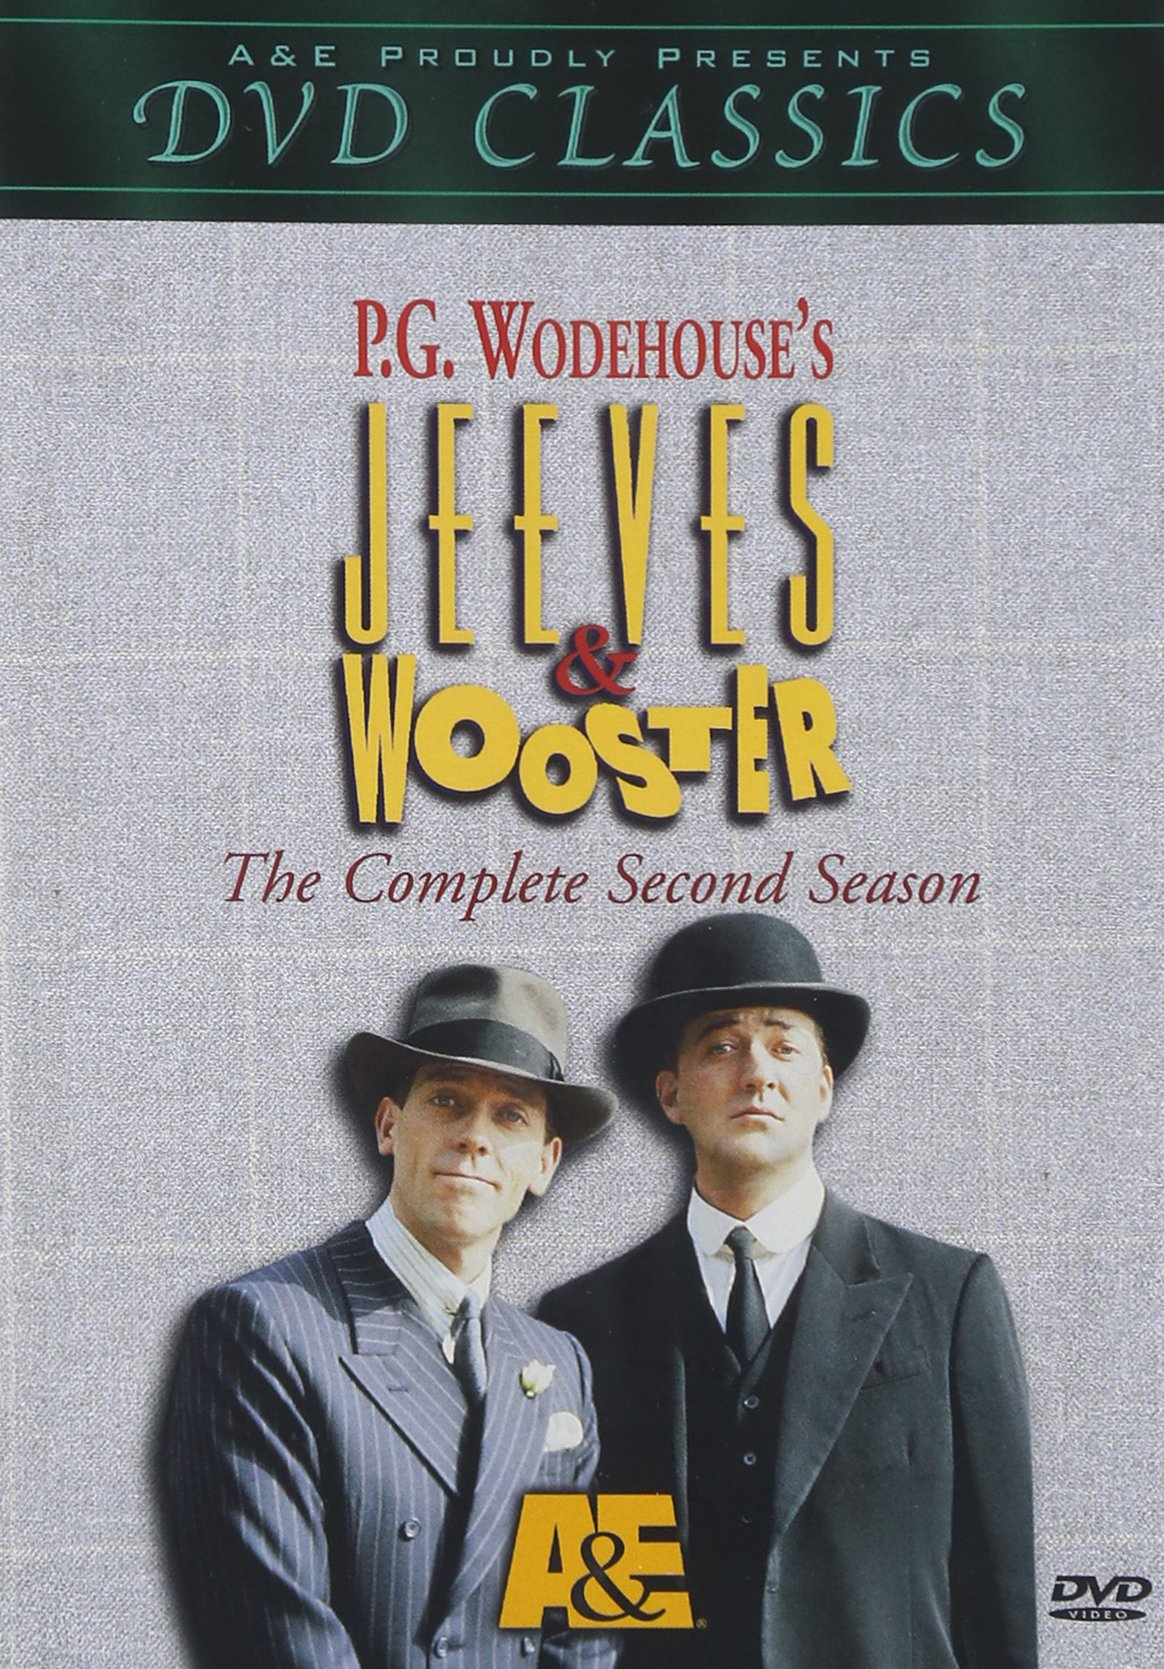 Jeeves & Wooster - The Complete Second Season